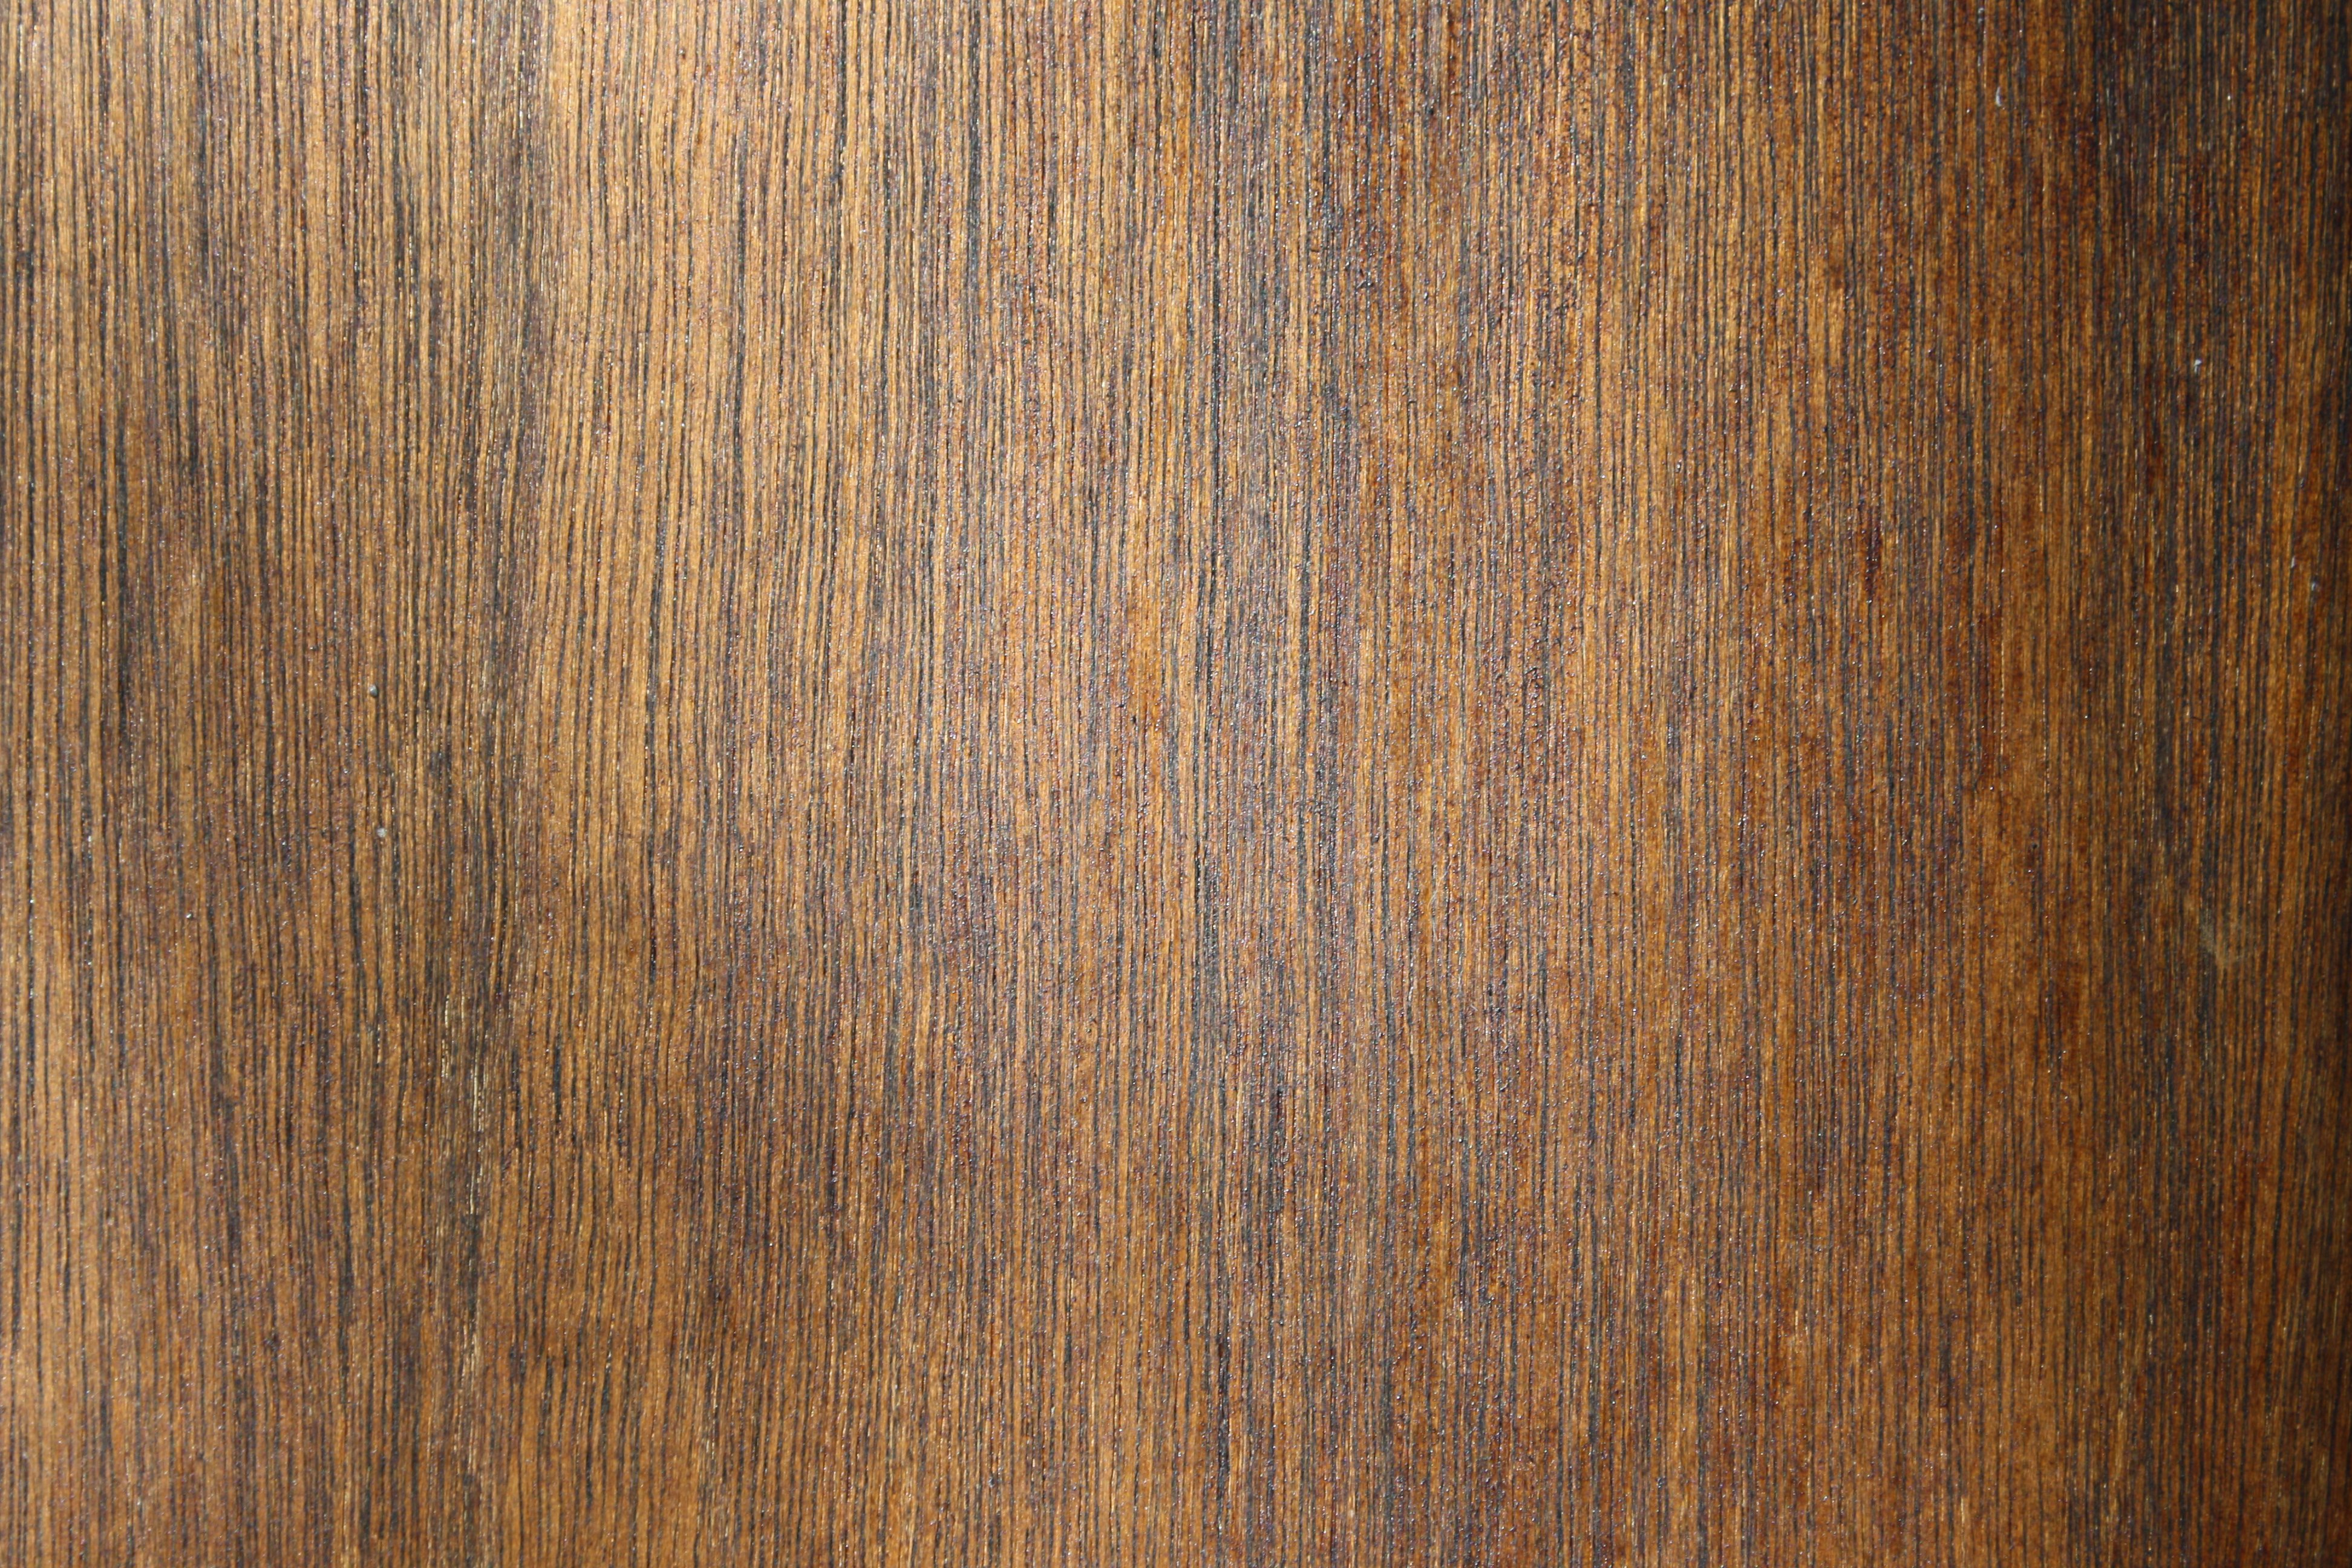 Wood with Walnut Stain Texture Picture | Free Photograph ...